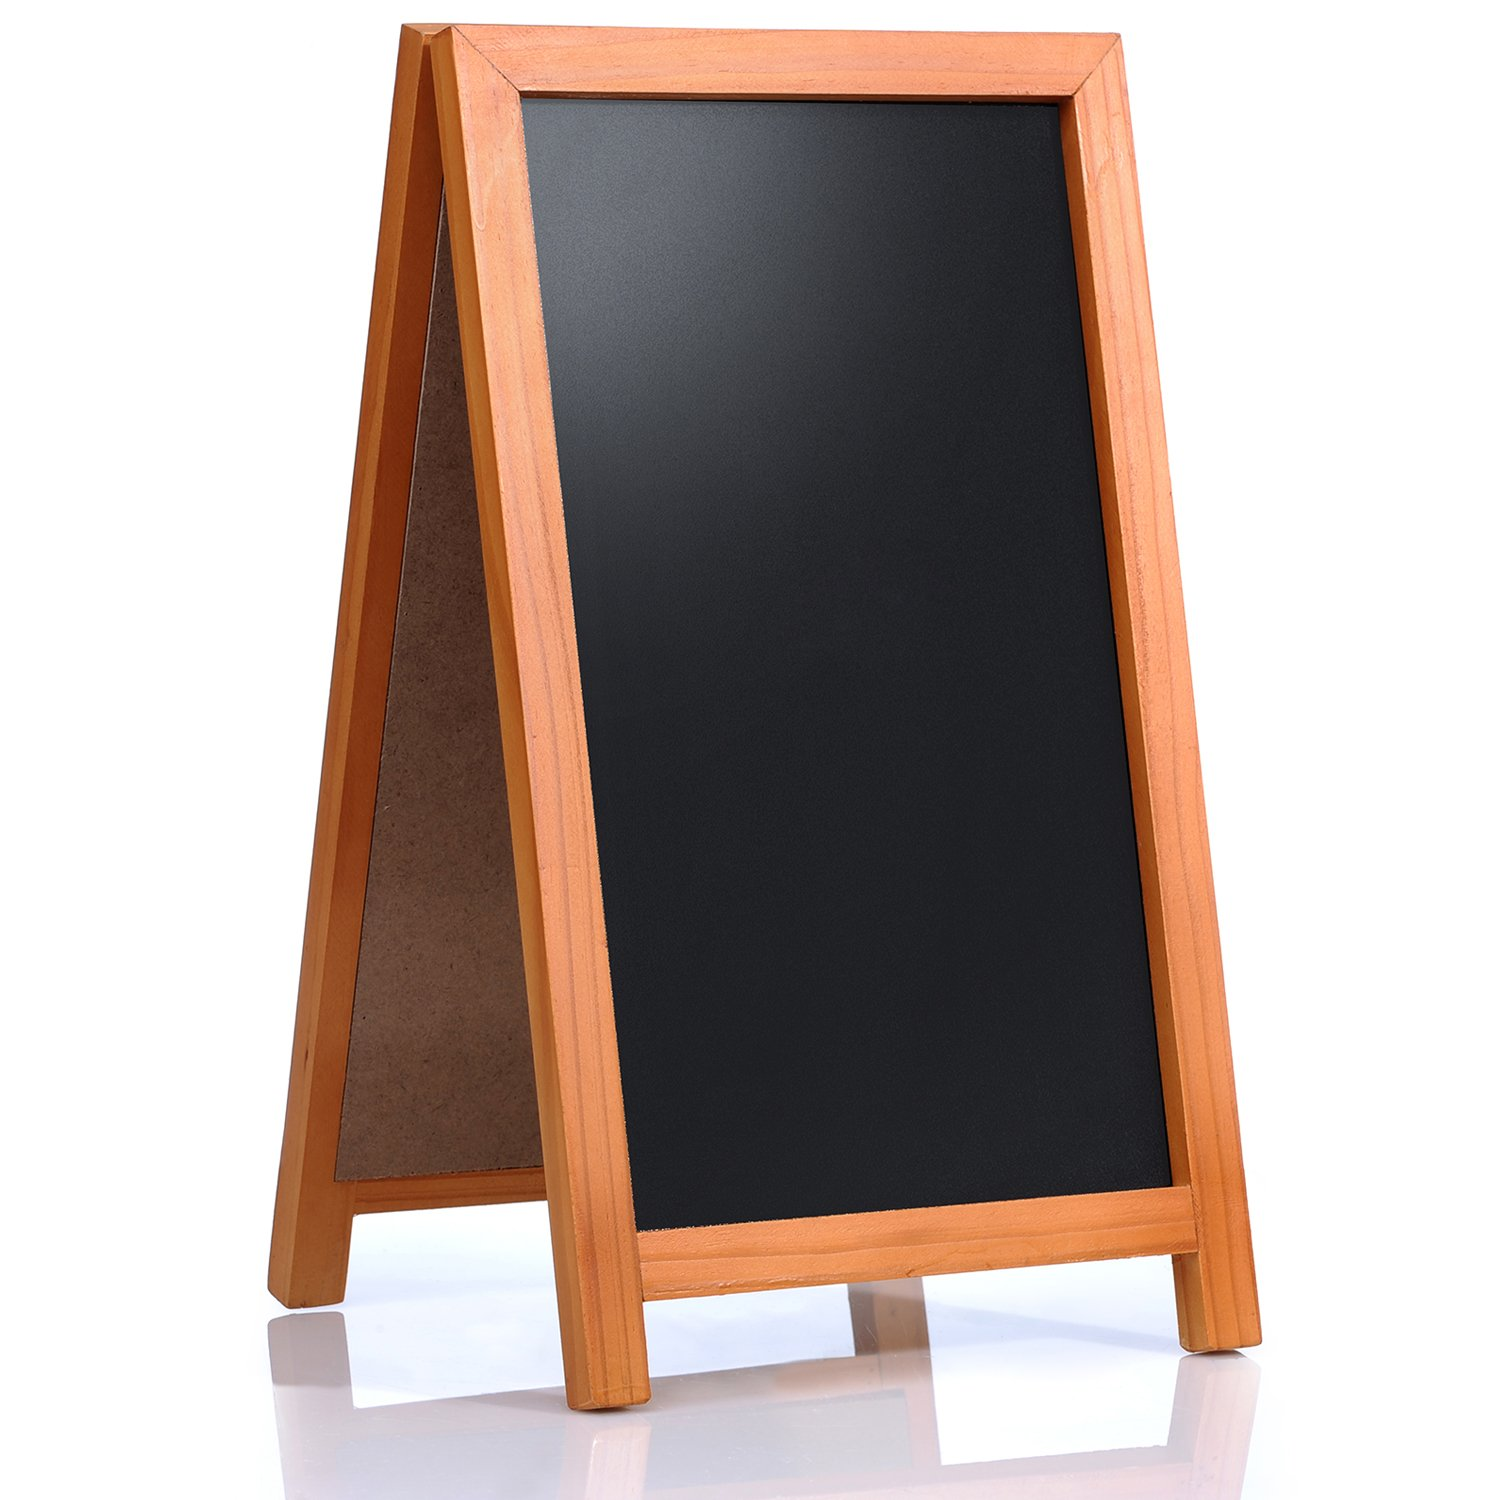 """Cedar Markers 42""""x24"""" A Frame Chalkboard Sign. Sidewalk Chalk Board Standing Sign. Blackboard for Restaurants, Bars, Shops and Wedding Signs. Robust Indoor and Outdoor Sandwich Sign for Chalk Markers."""